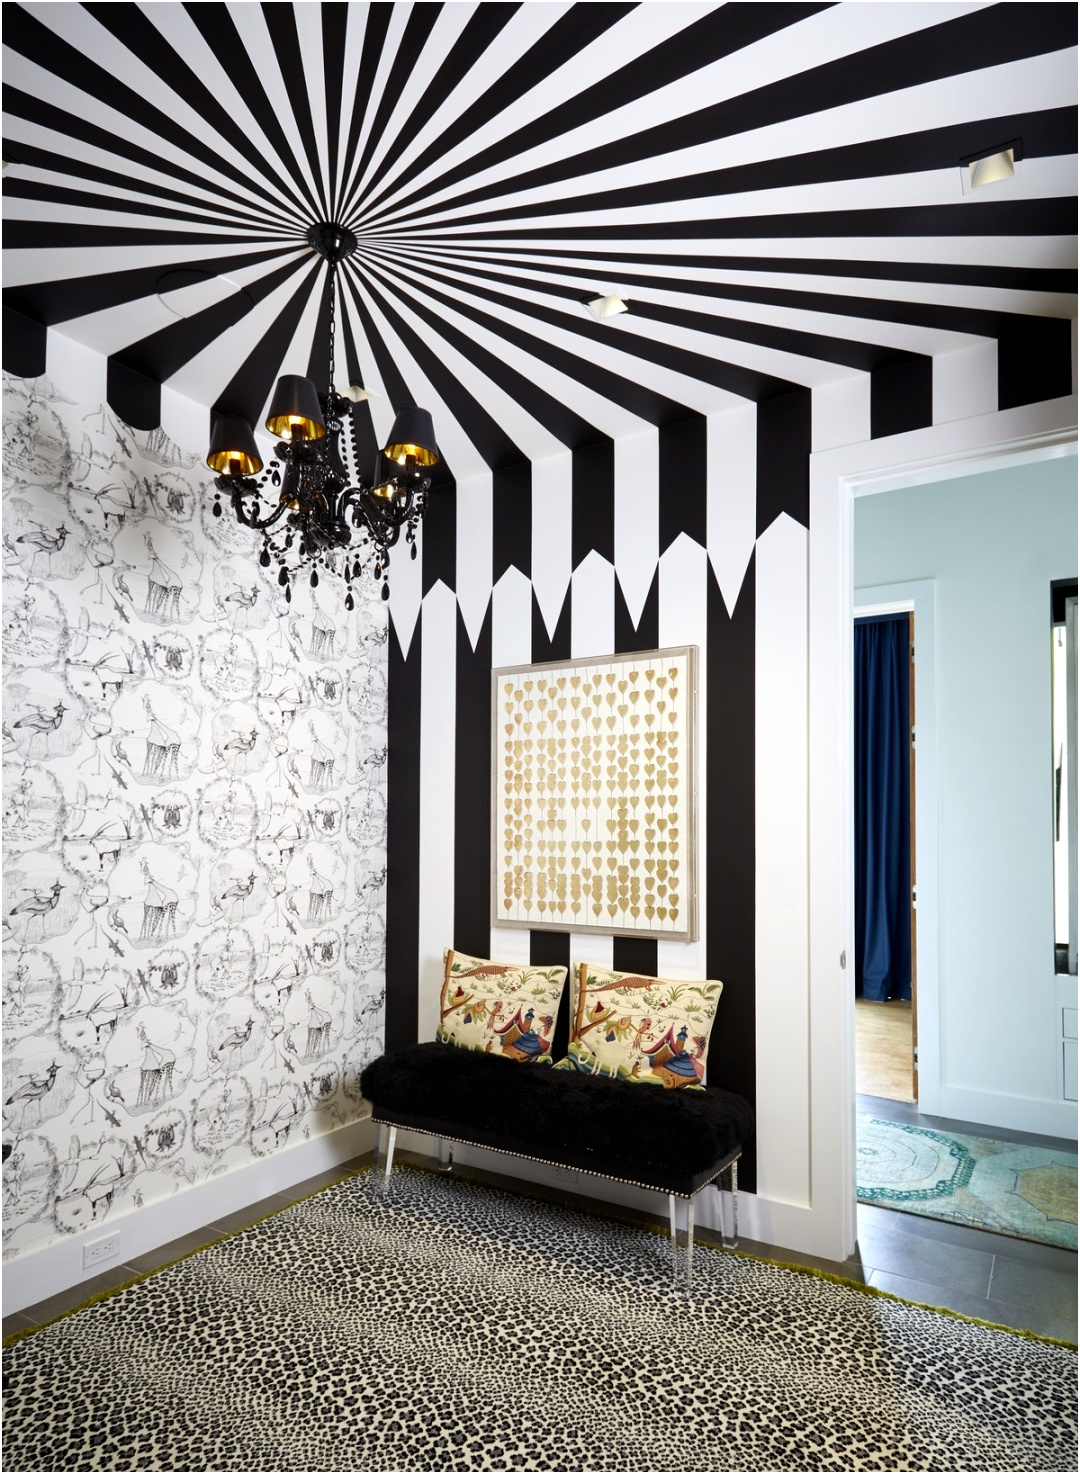 04 Painted Ceiling Ideas Black White Tent Like Shape